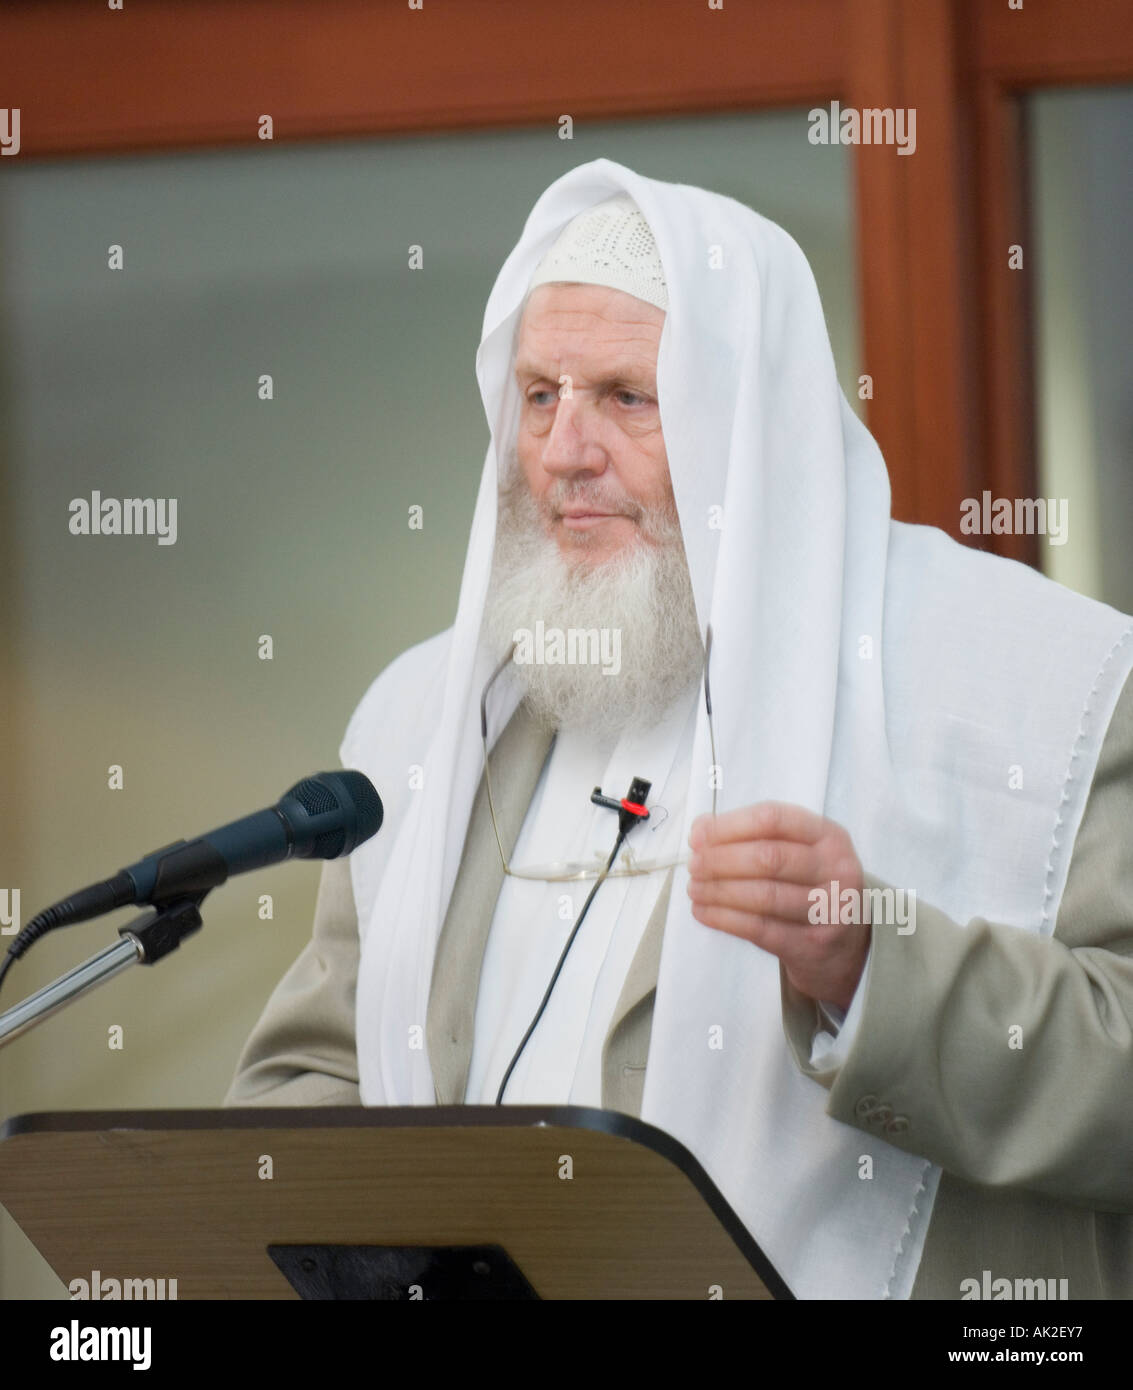 Yusuf Estes speaking at conference - Stock Image